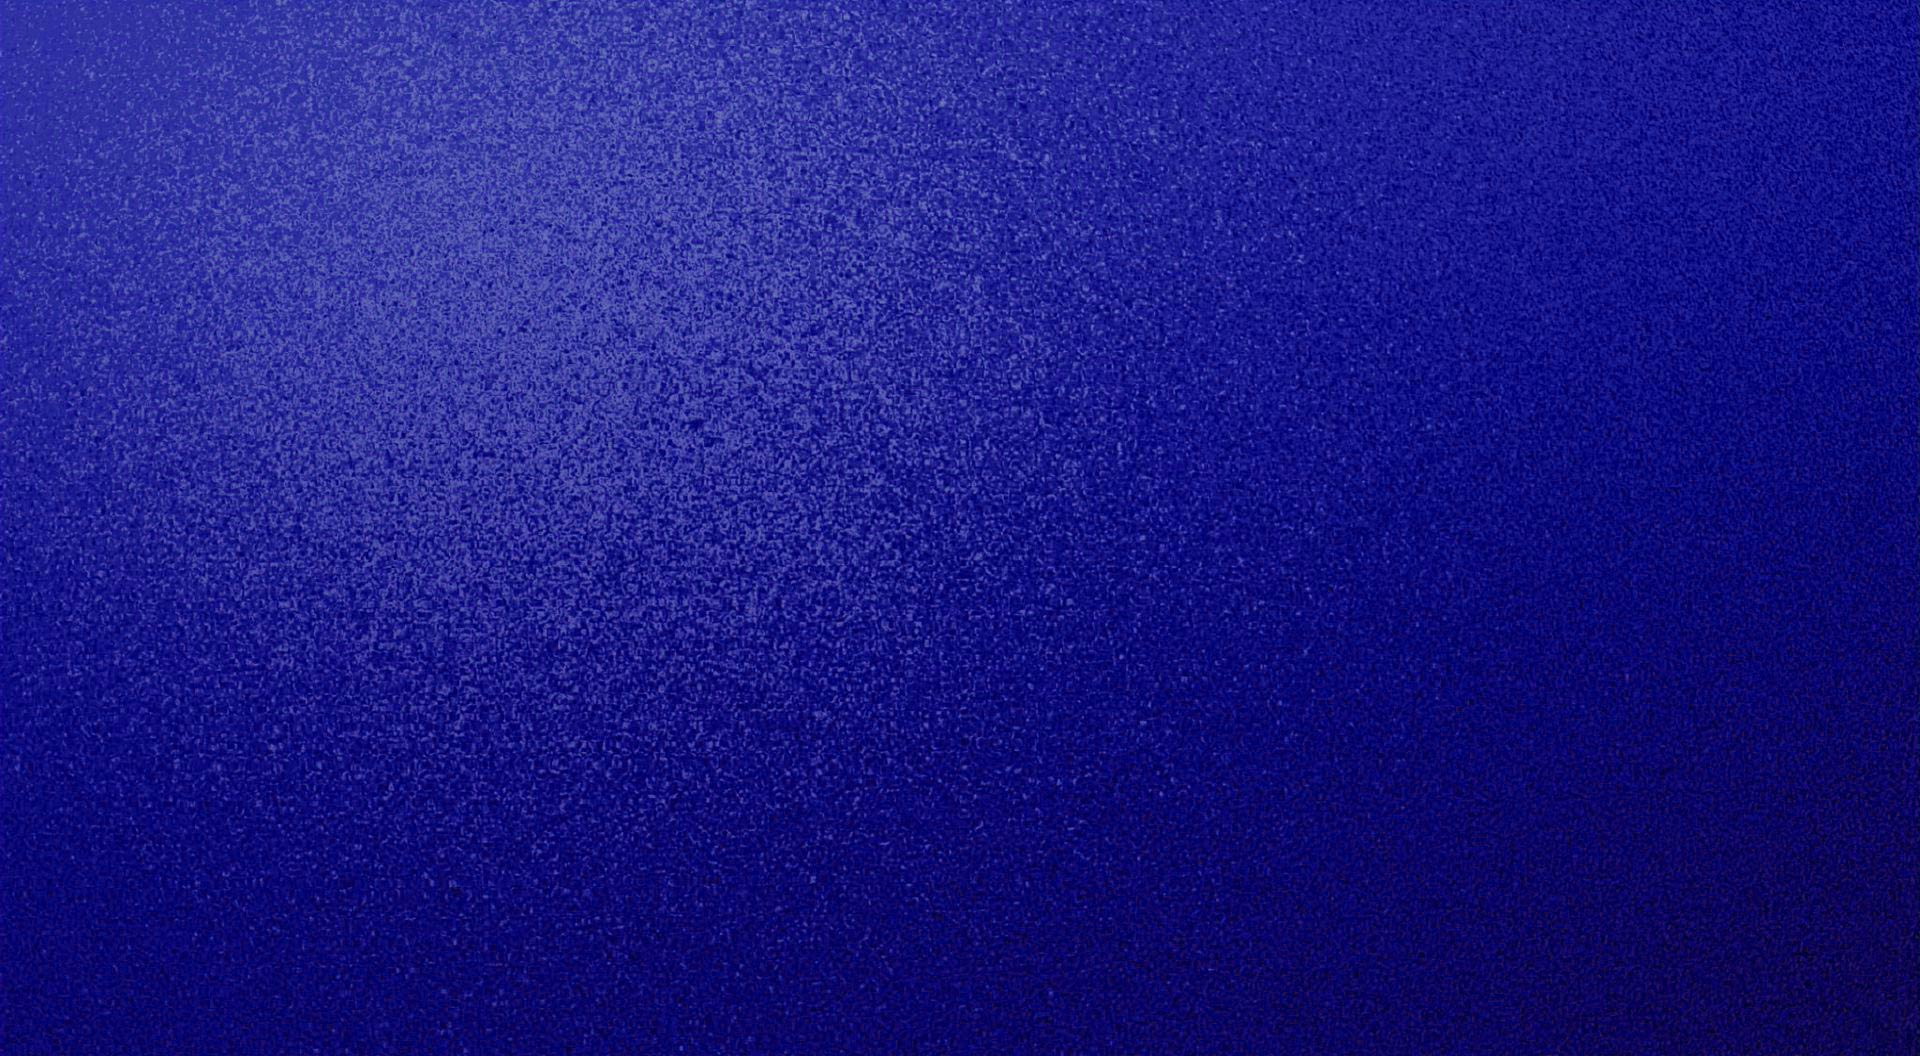 Wallpapers For Plain Navy Blue Background